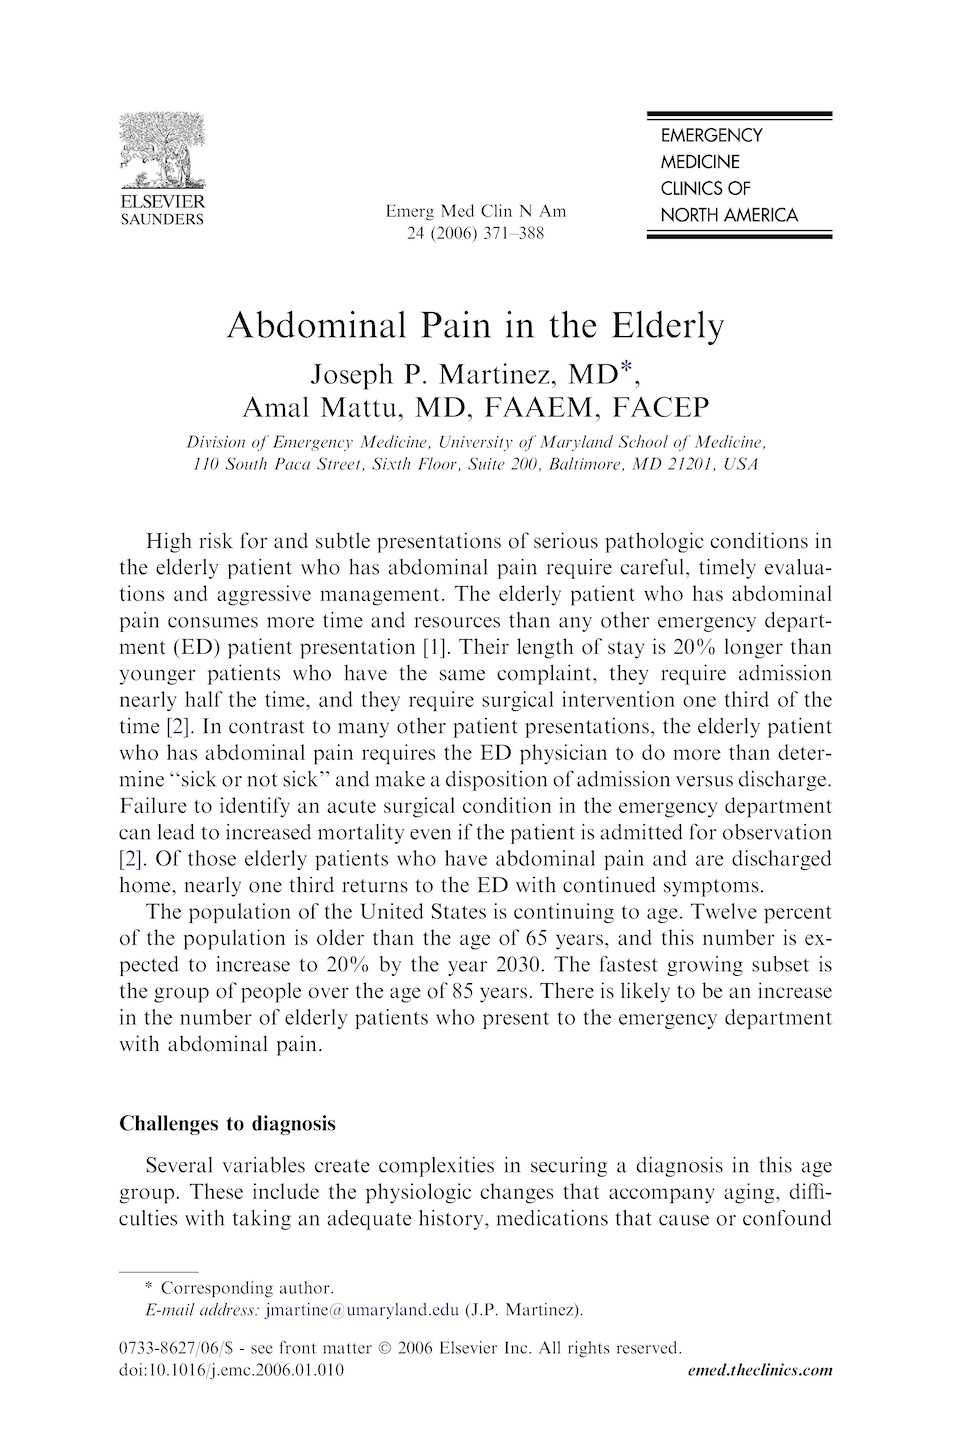 Abdominal Pain in the Elderly in Emerg Med Clinics of NA 2006_Page_01